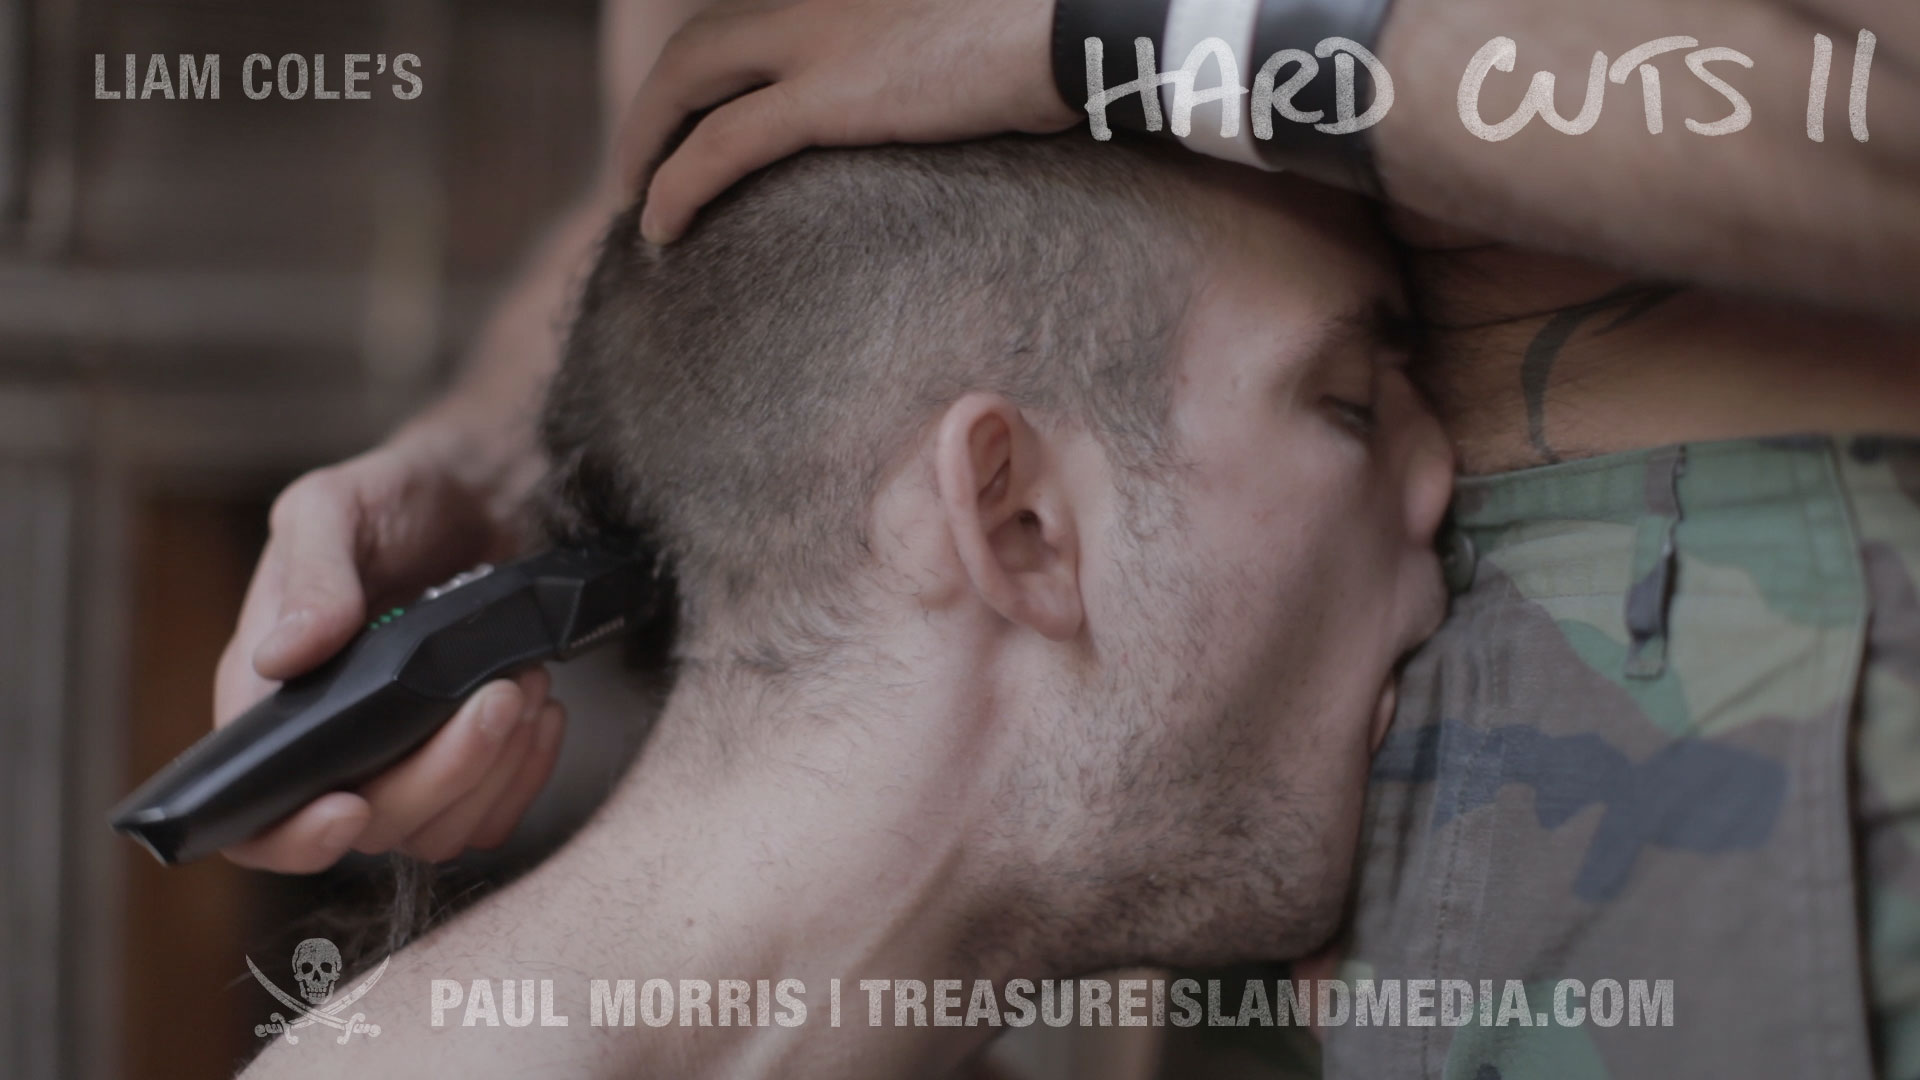 Hard cuts 2 full video